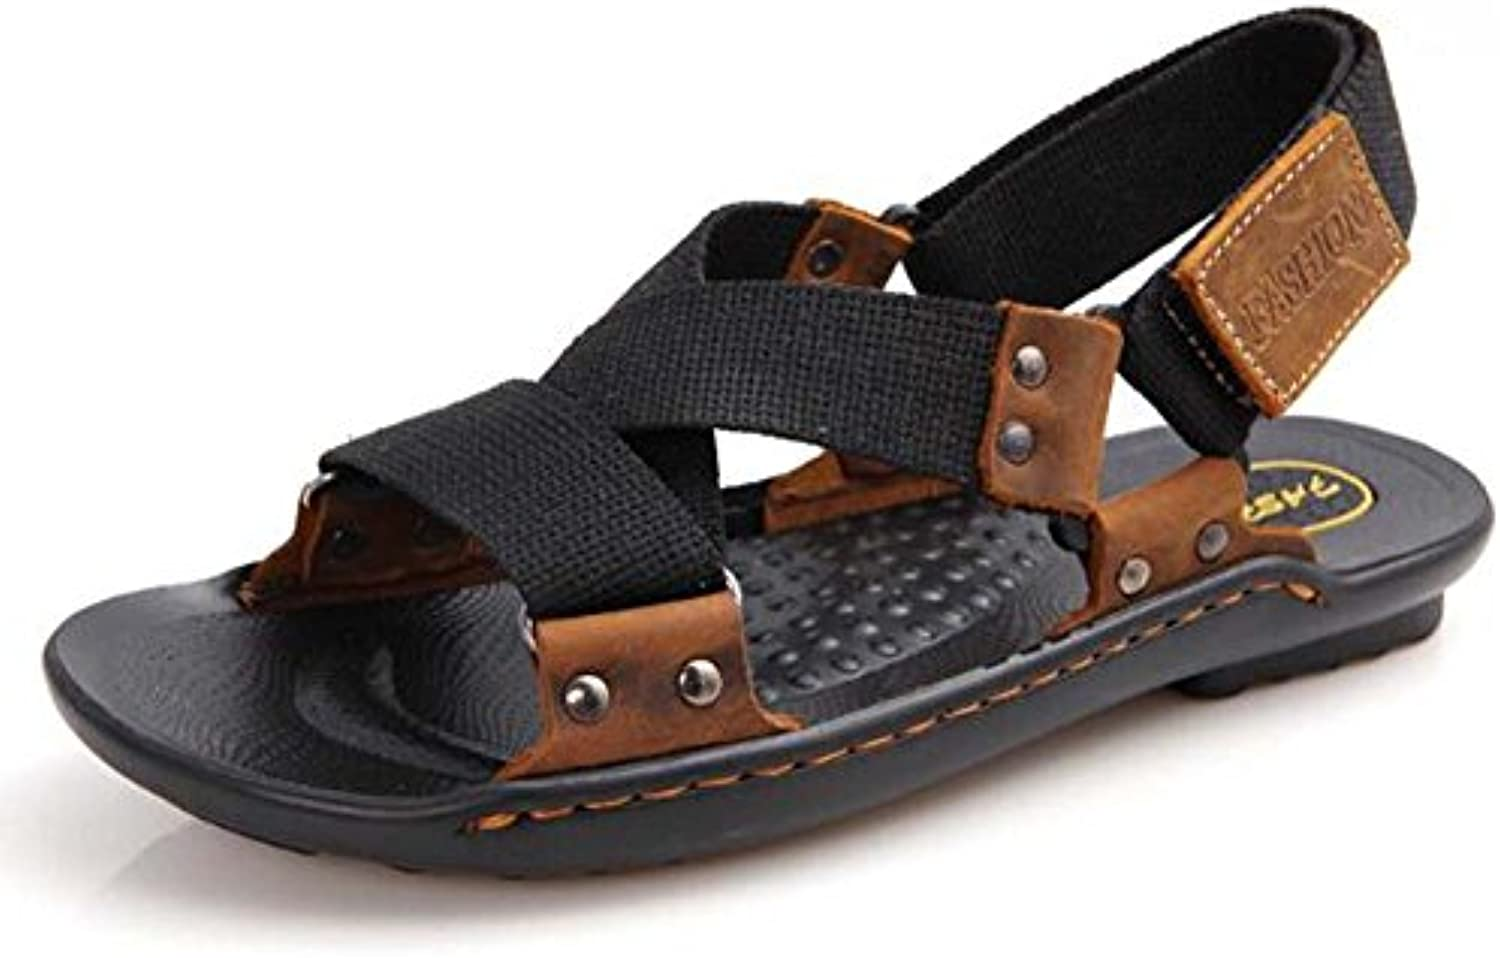 Herren Sandalen Nylon Canvas Sommer Sandalen für Casual Black Green Größe 38 44 Outdoor